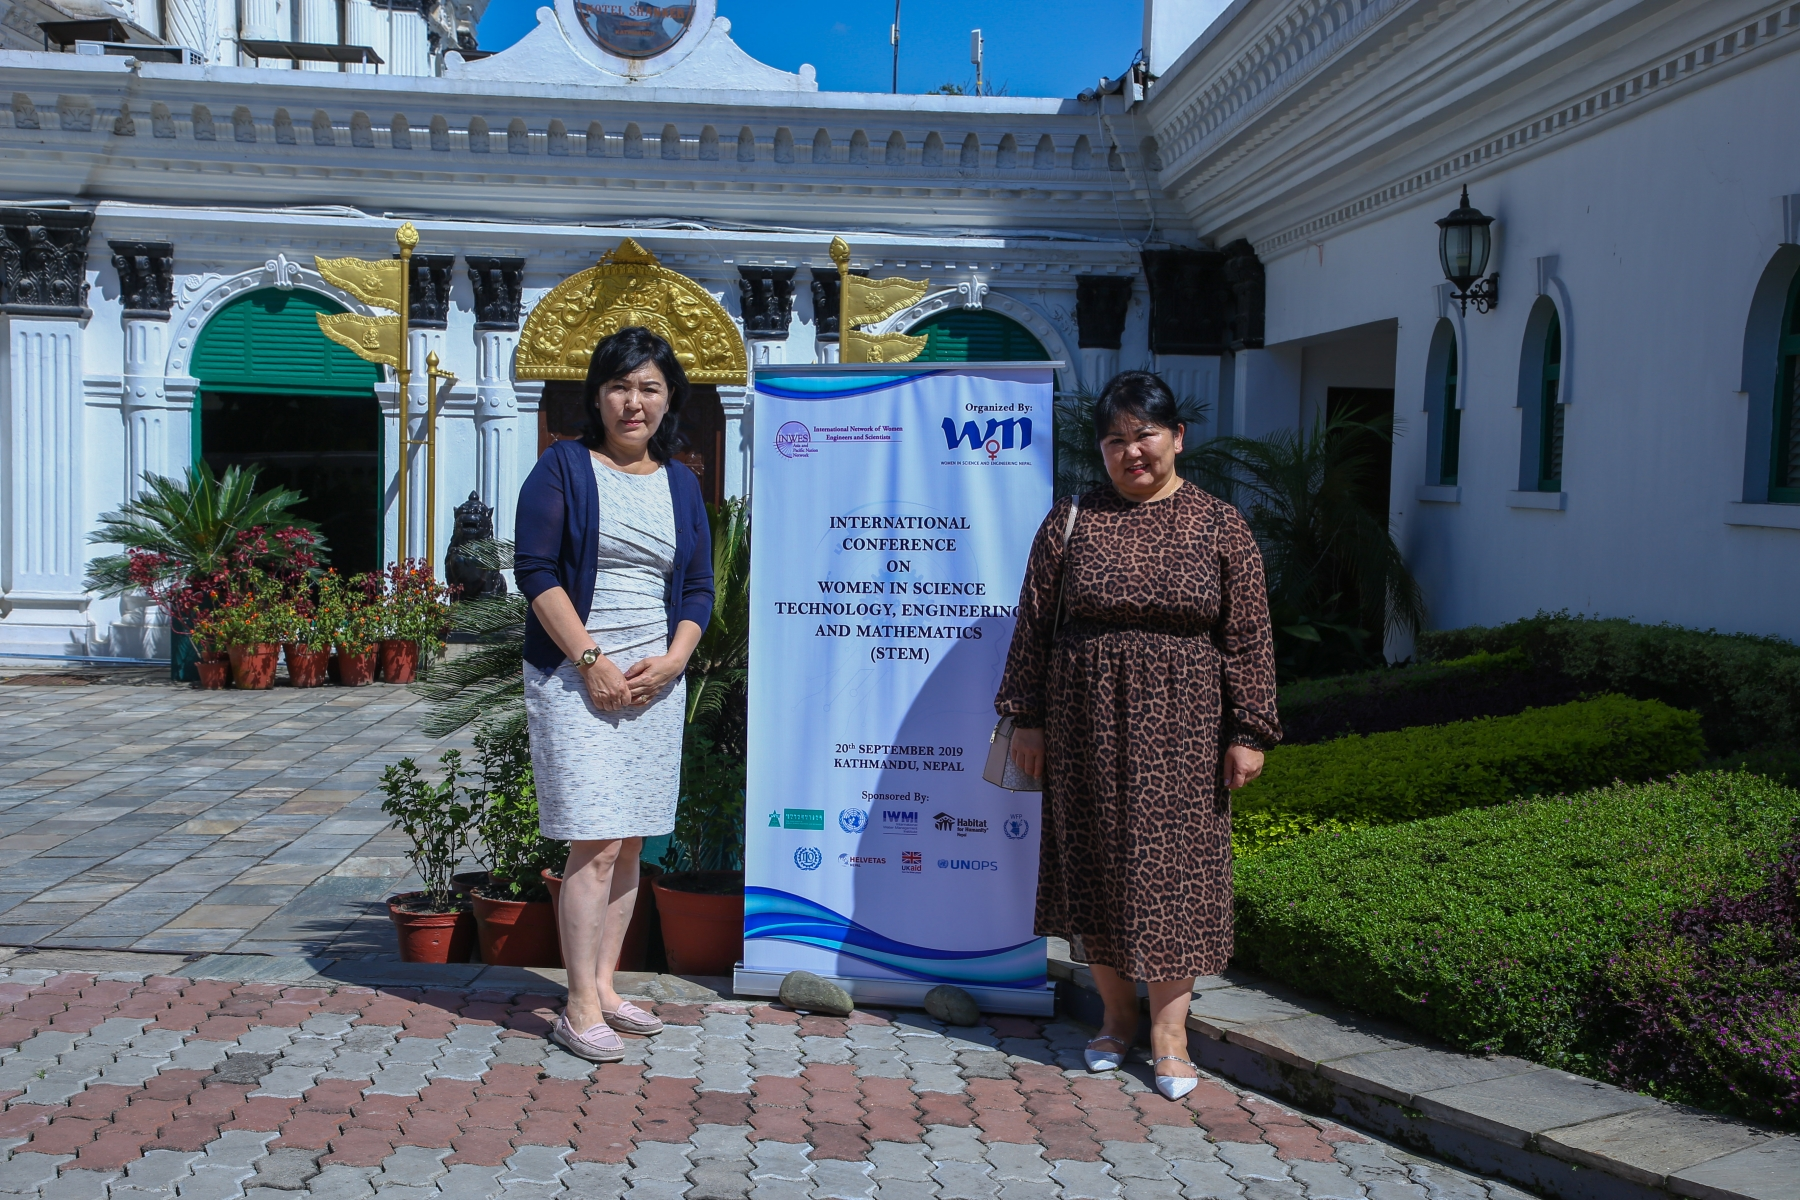 21st Sept 2019 - International Conference on women in STEM(352)